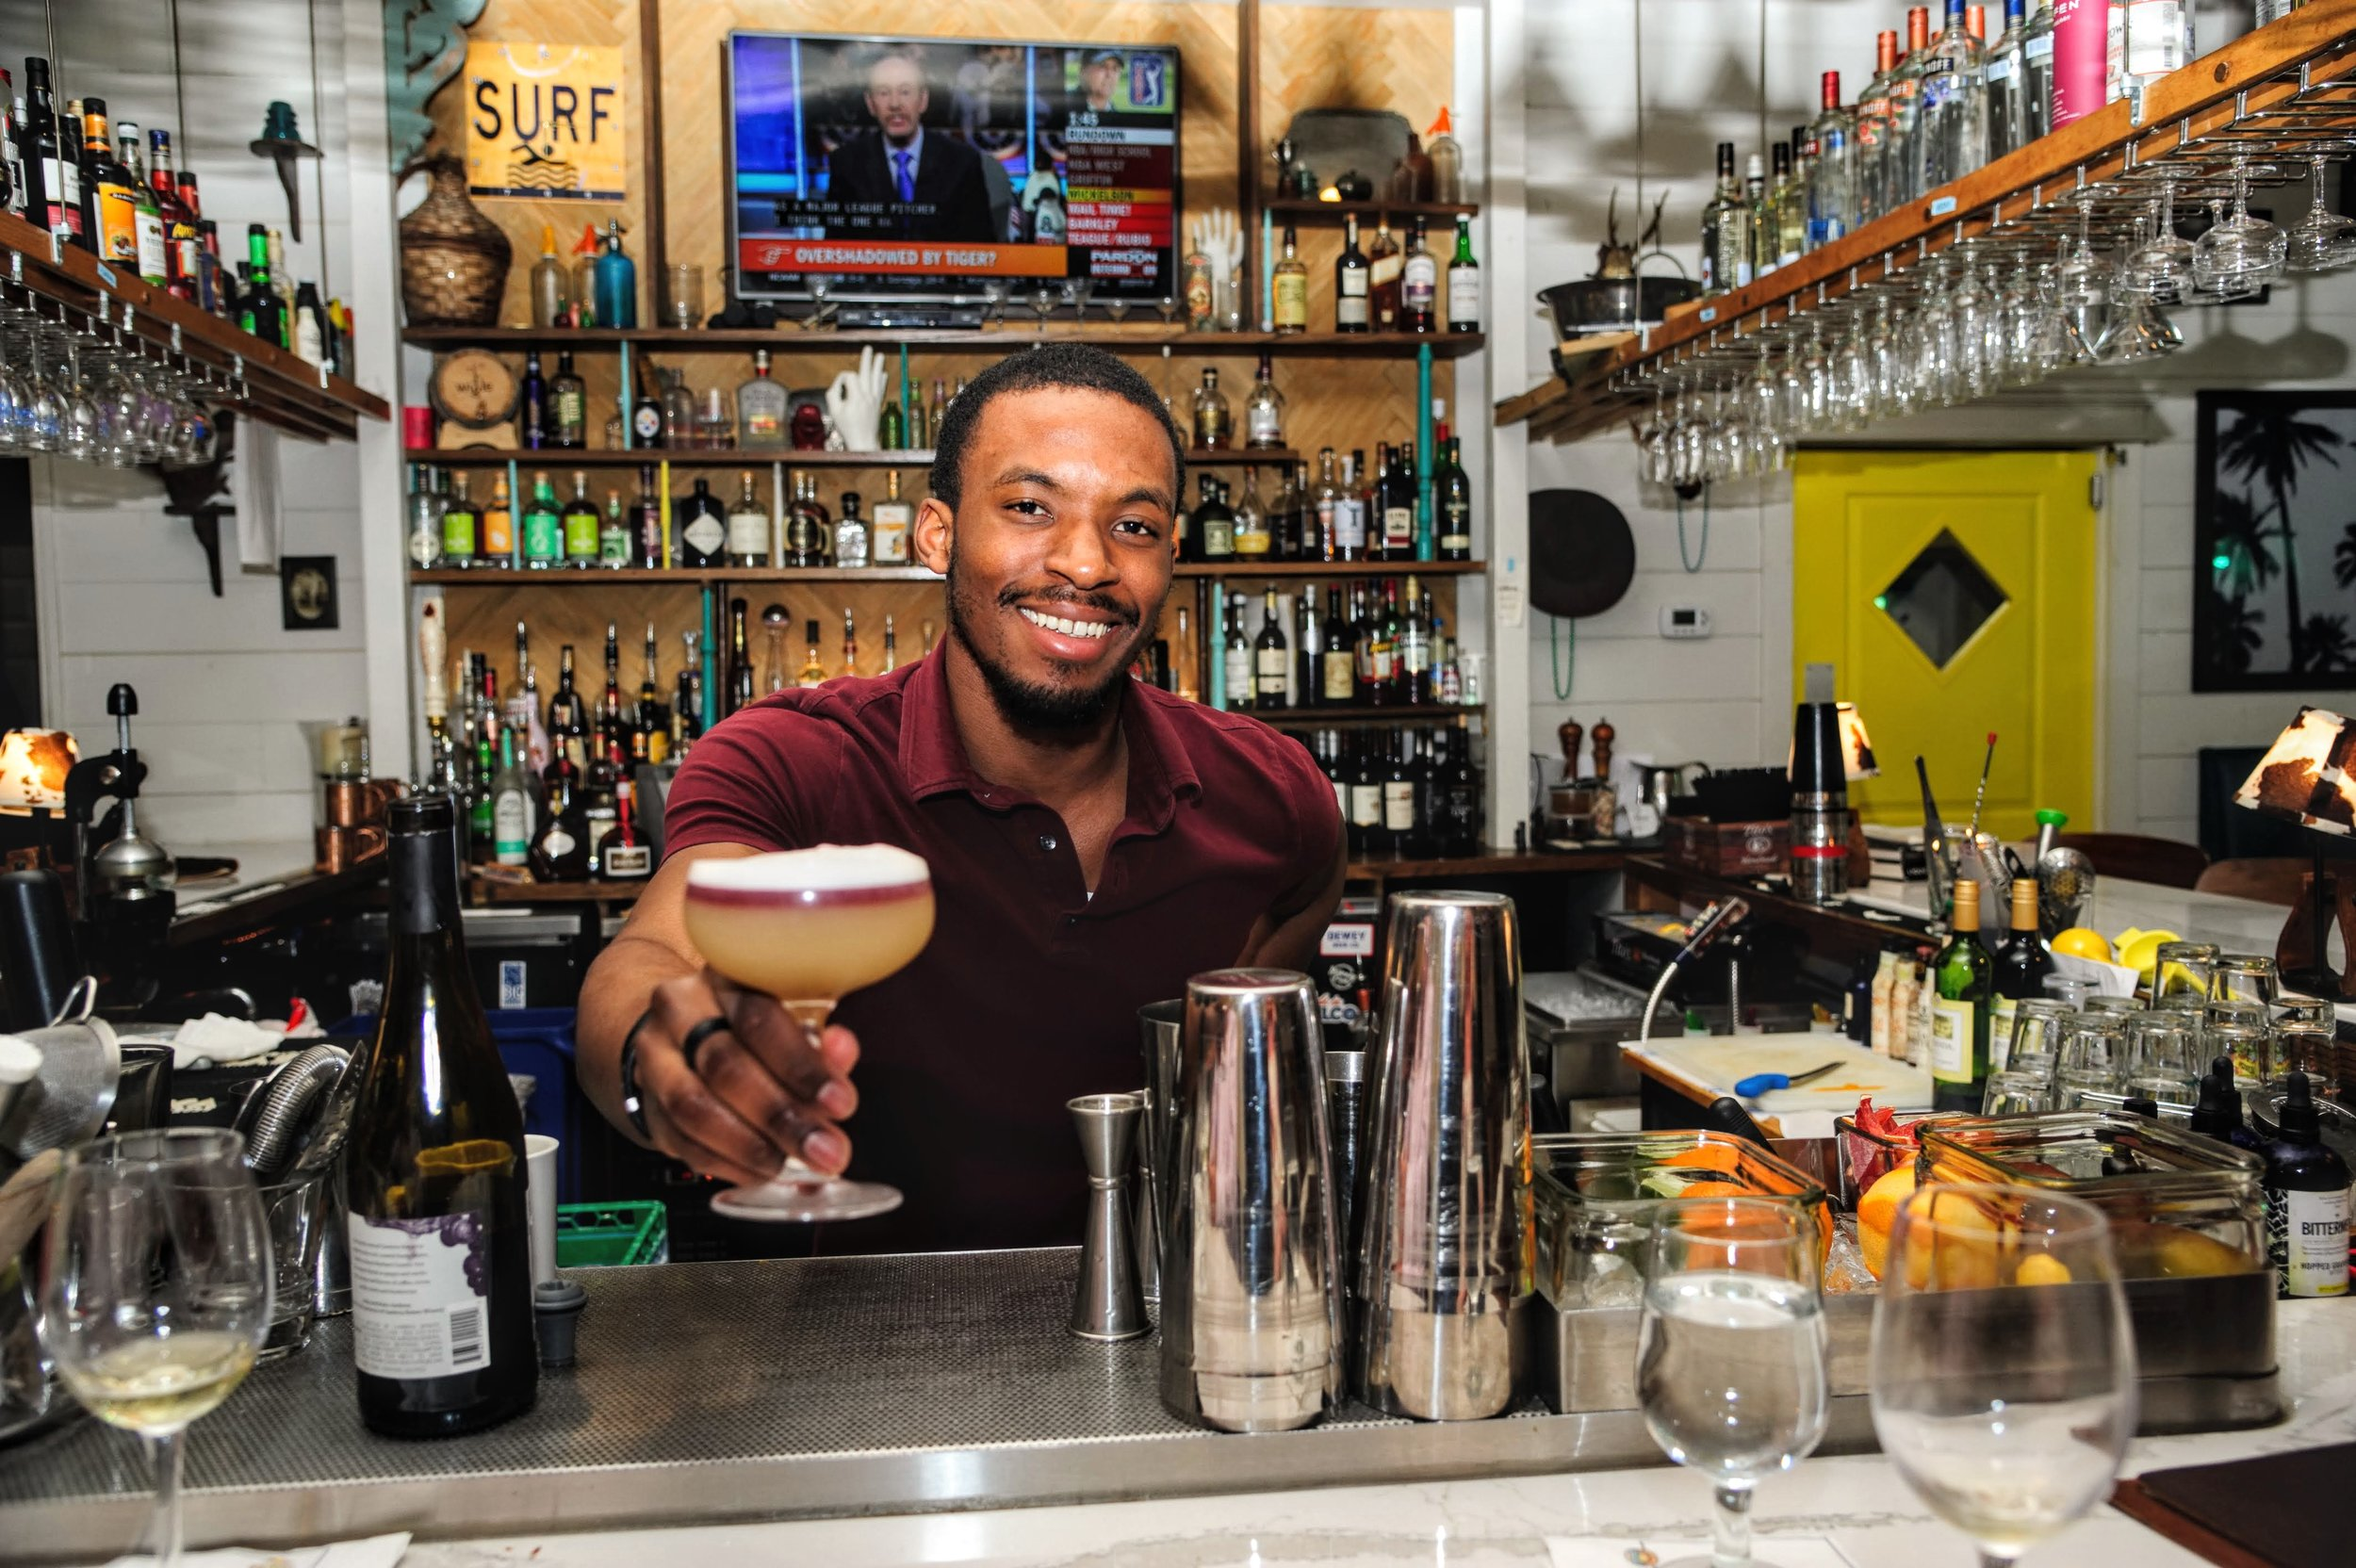 Fork and Flask bartender says it's all about style - The first time Sean Norris walked into the Fork and Flask at Nage, he knew he wanted to work there.Read on Delmarva Now